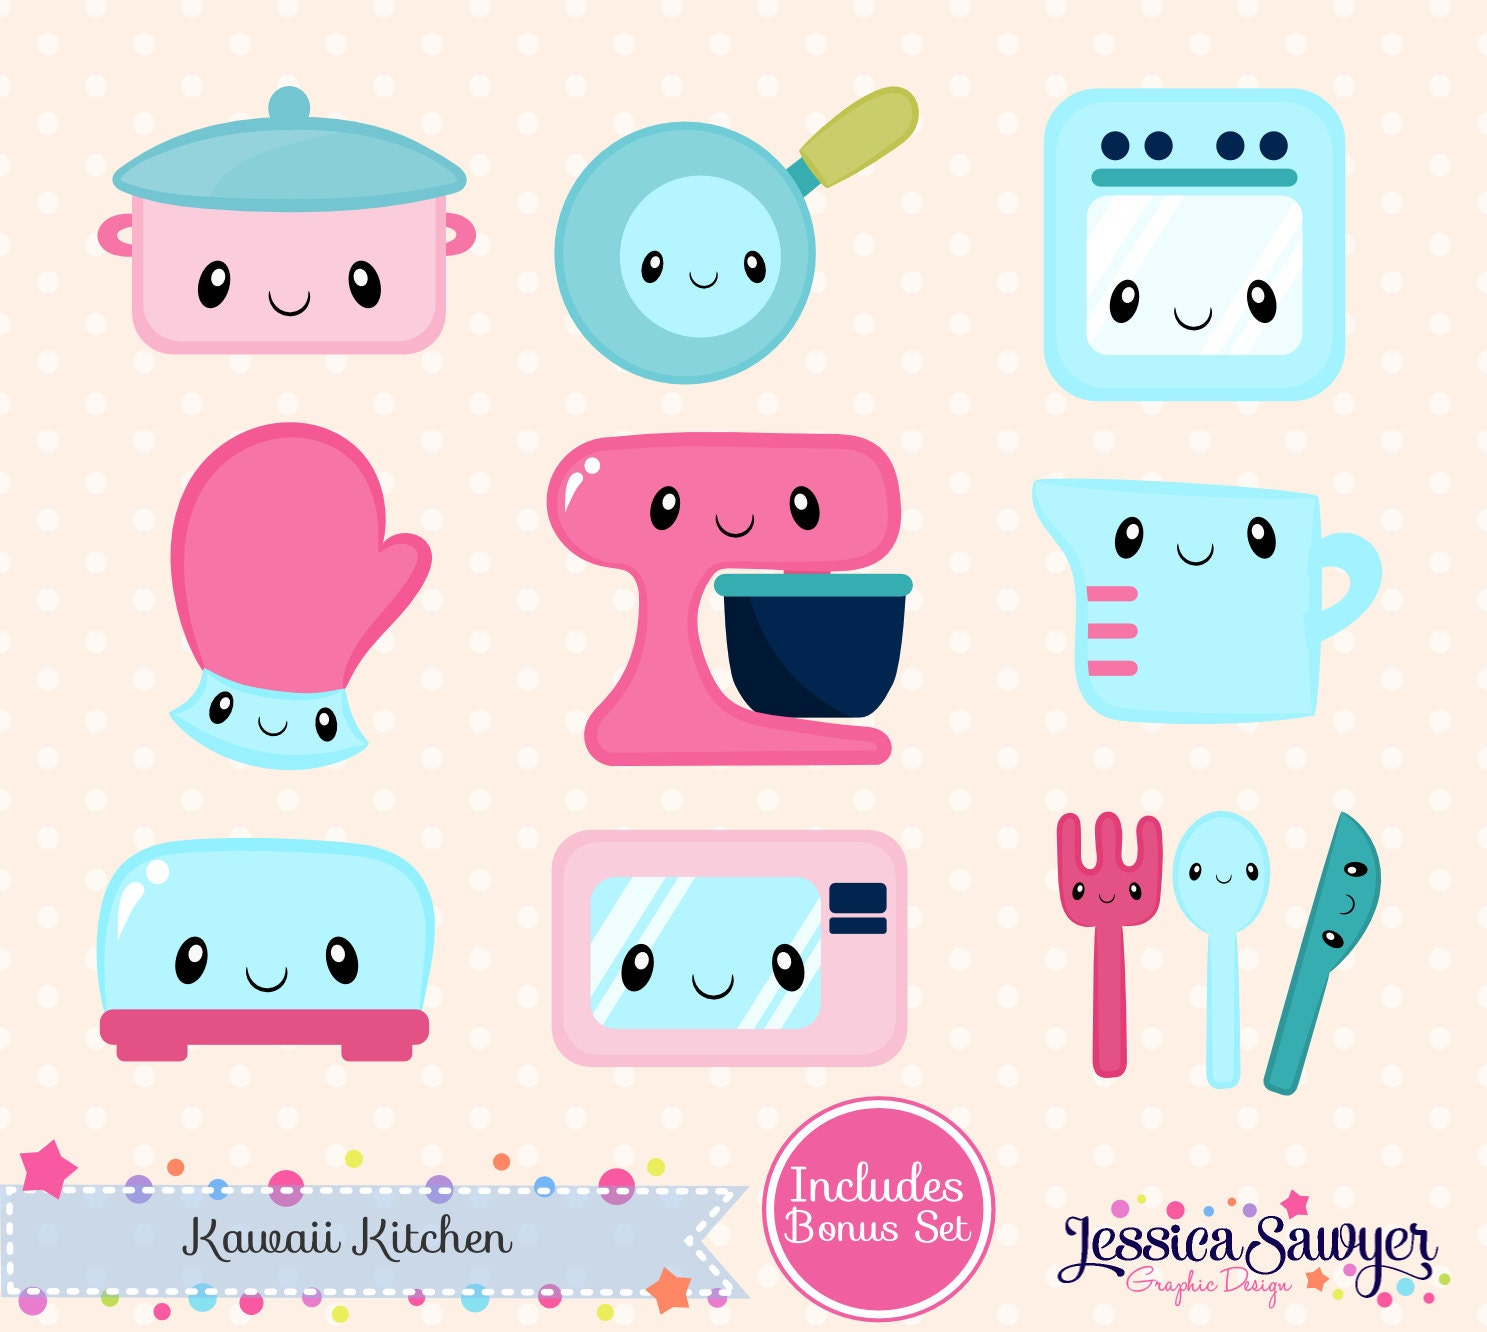 Instant Download Kawaii Kitchen Clipart And Vectors For